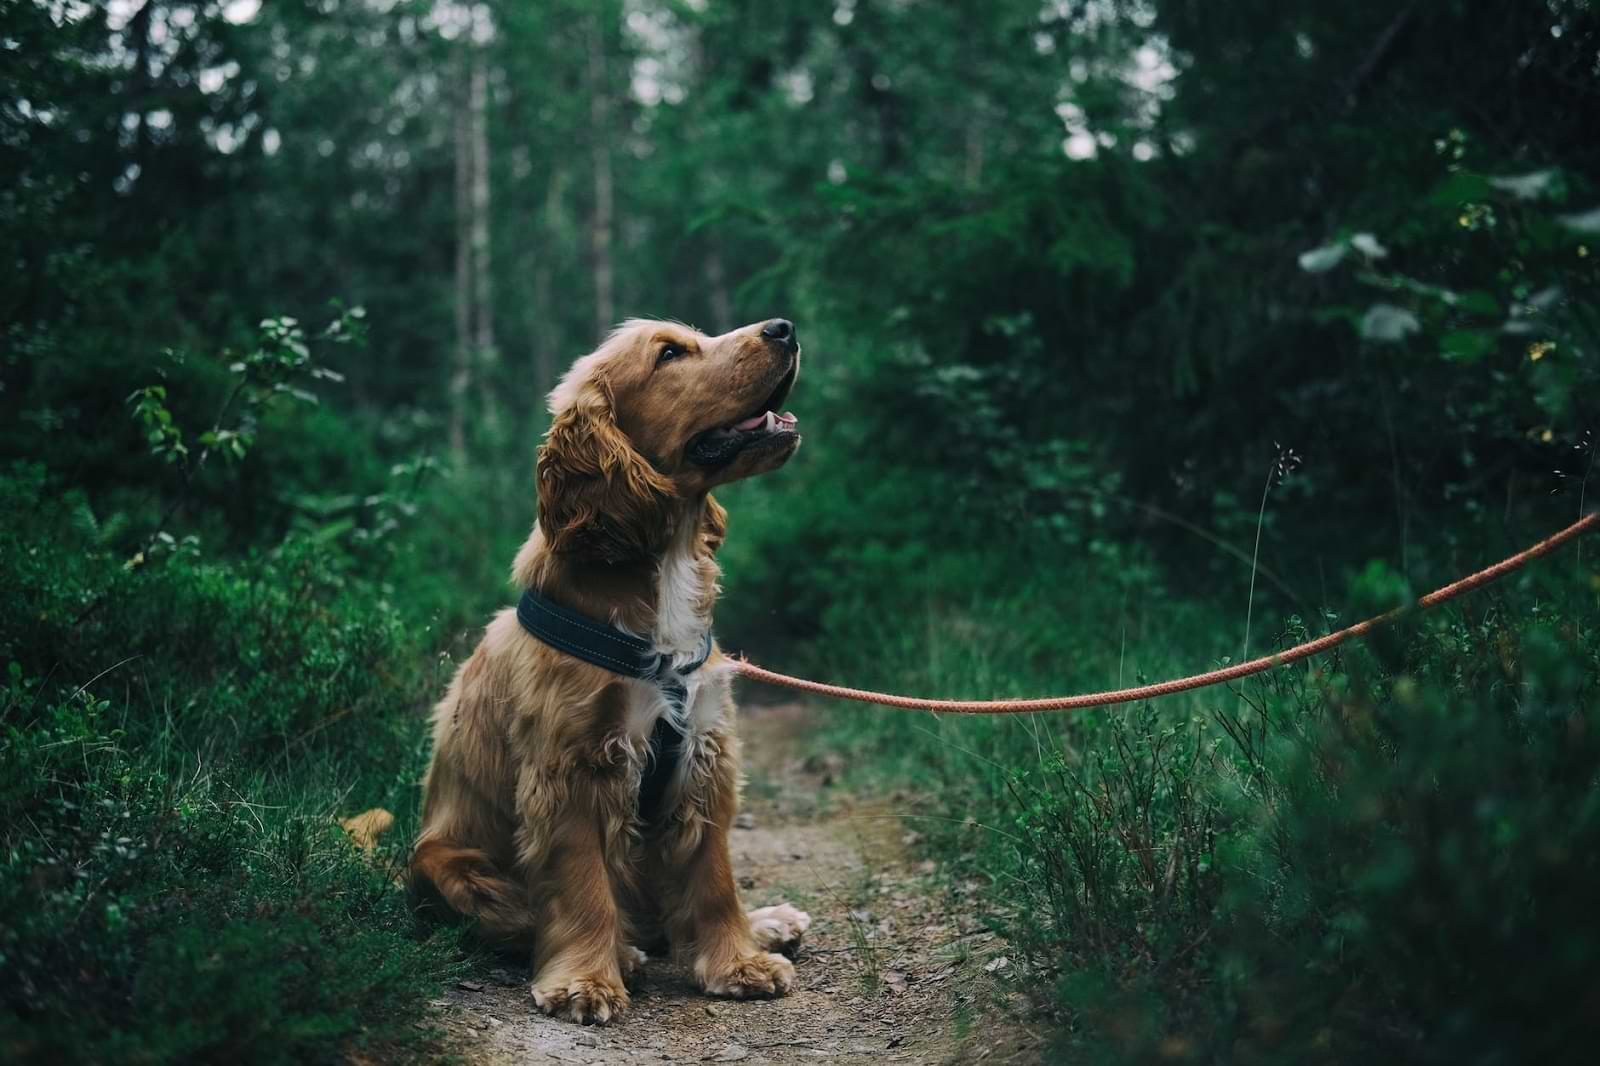 Different Breeds May Require Different Insurance Plans